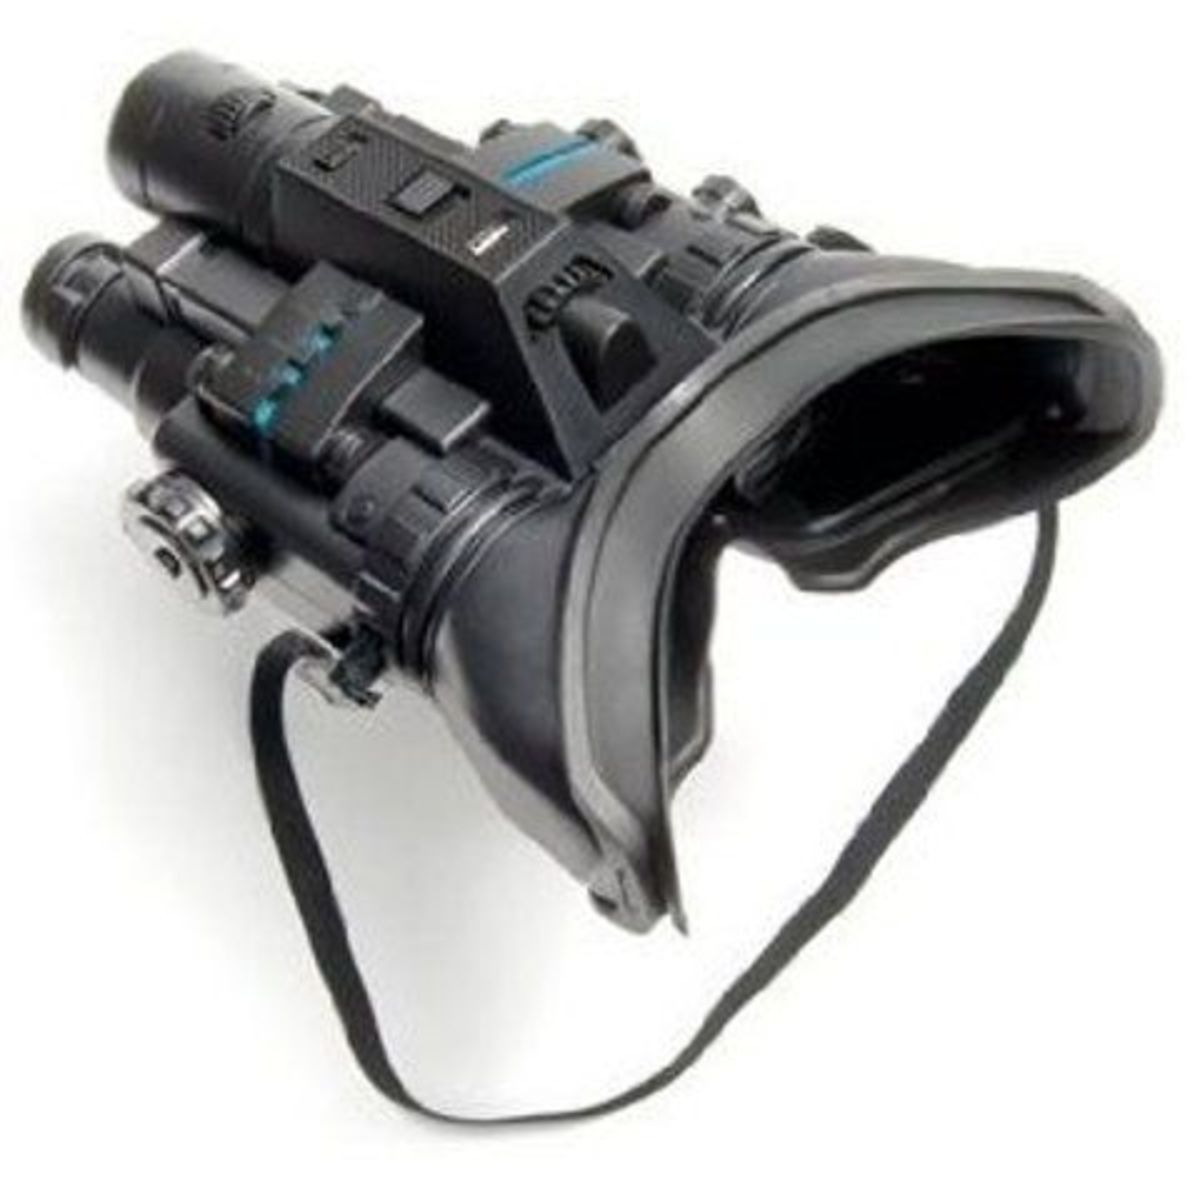 Spy Net Recording Night Vision Goggles: top view